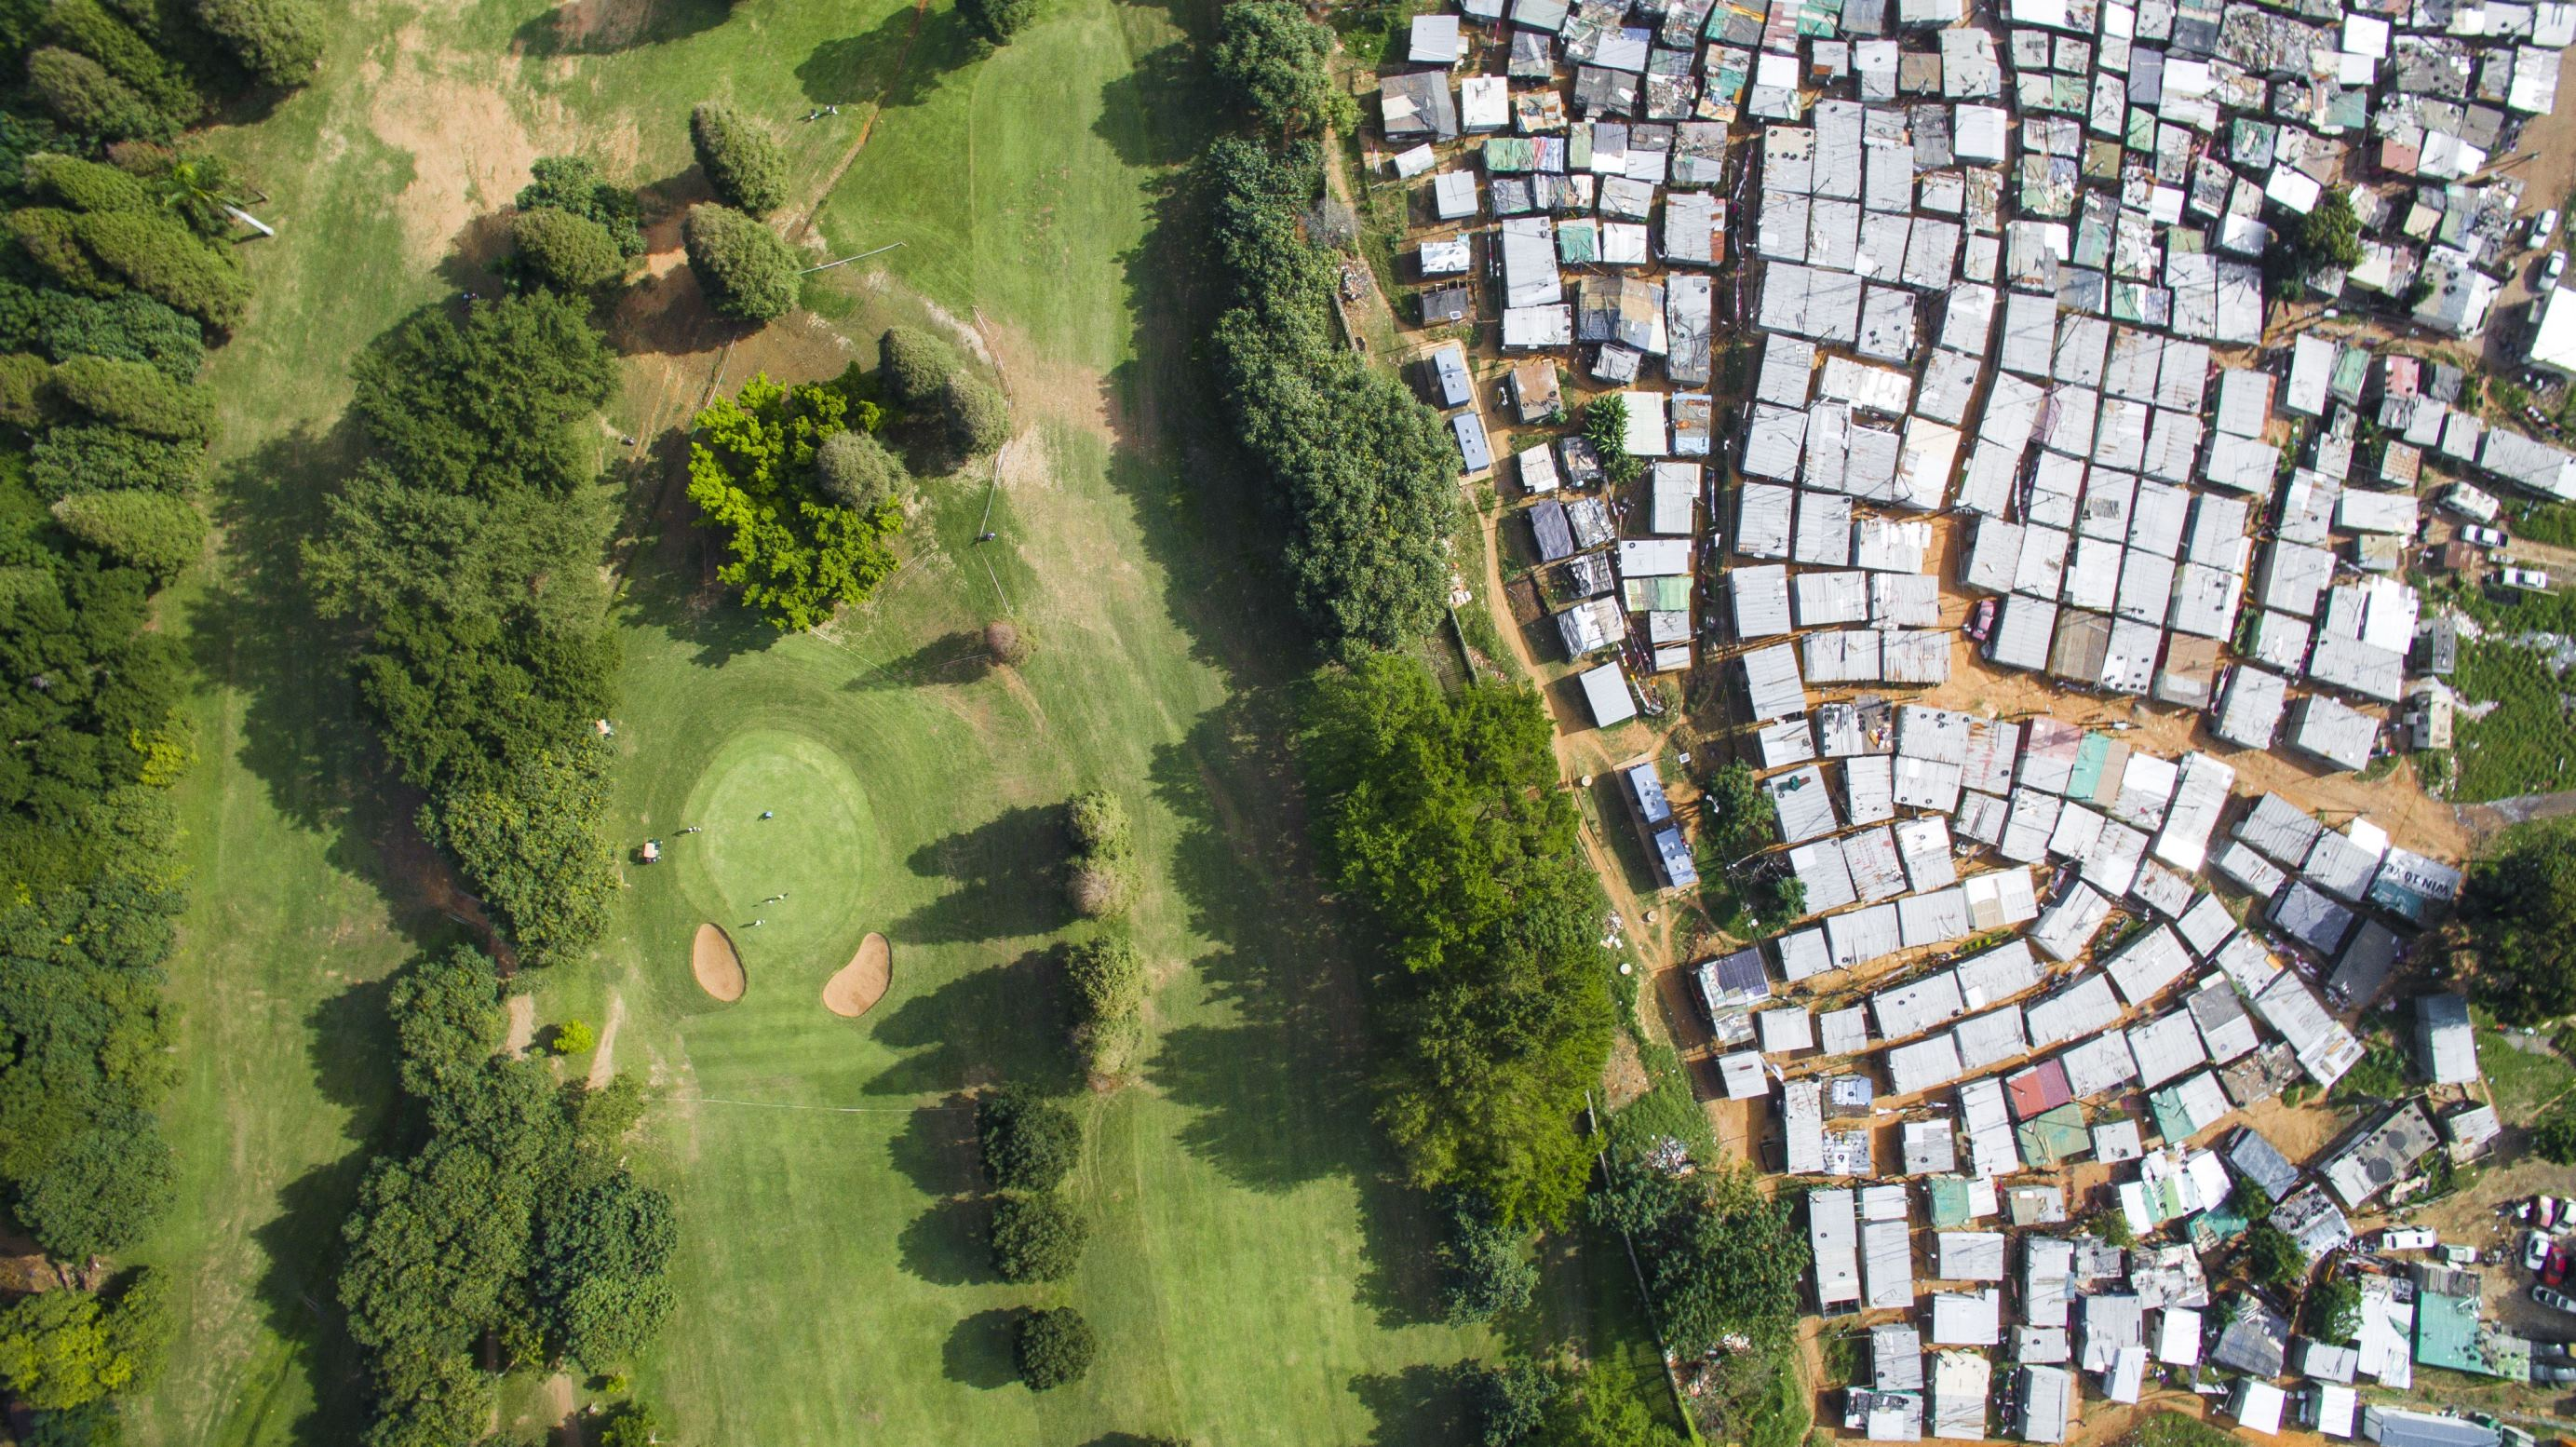 Slide 66 of 100: Papwa Sewgolum Golf Course is located along the lush green slopes of the Umgeni River in Durban. A sprawling informal settlement exists just metres from the tee for the 6 hole. A low-slung concrete fence separates the tin shacks from the carefully manicured fairways